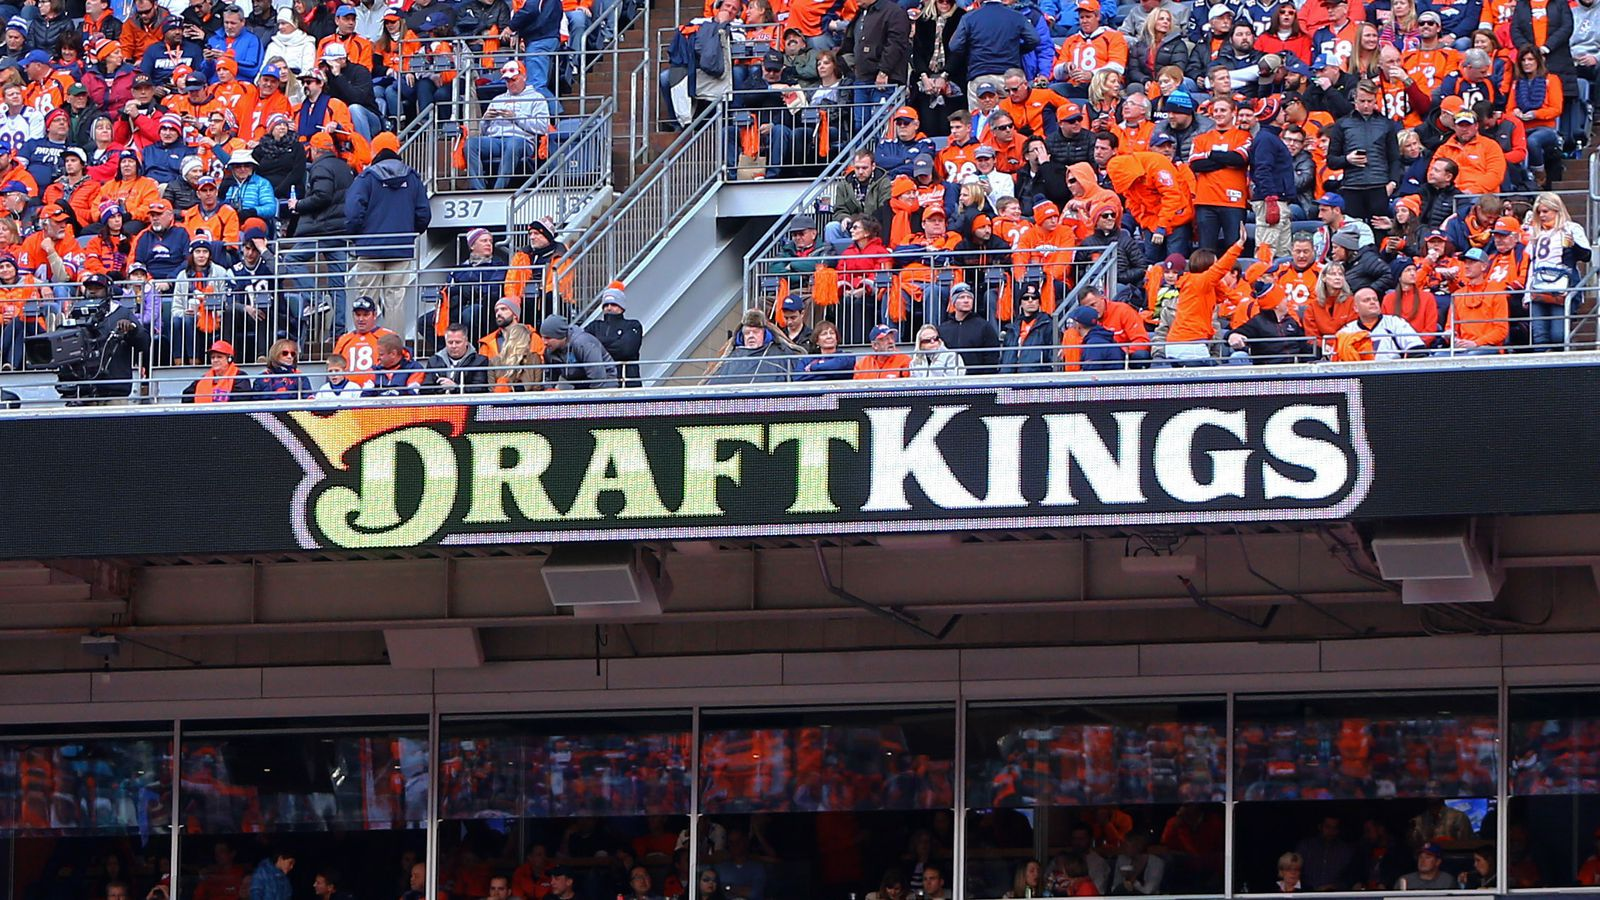 Fantasy CPR has your DraftKings PGA needs covered for The Open Championship covered Click here for picks and analysis to help you win 1000000 this week!